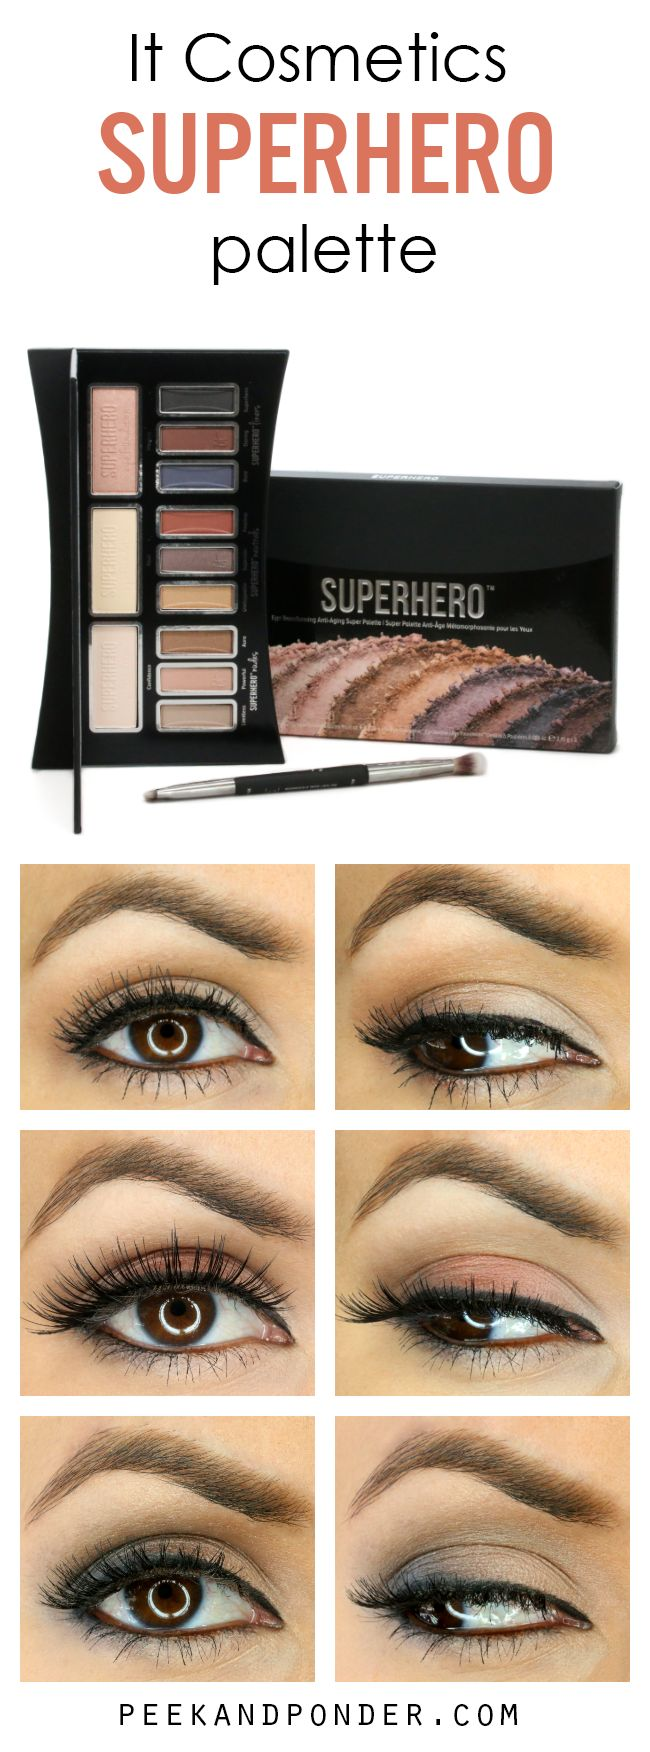 3 looks using the It Cosmetics Superhero palette. This palette has 12 shades and is really good quality! Great pigmentation and variety of colors.